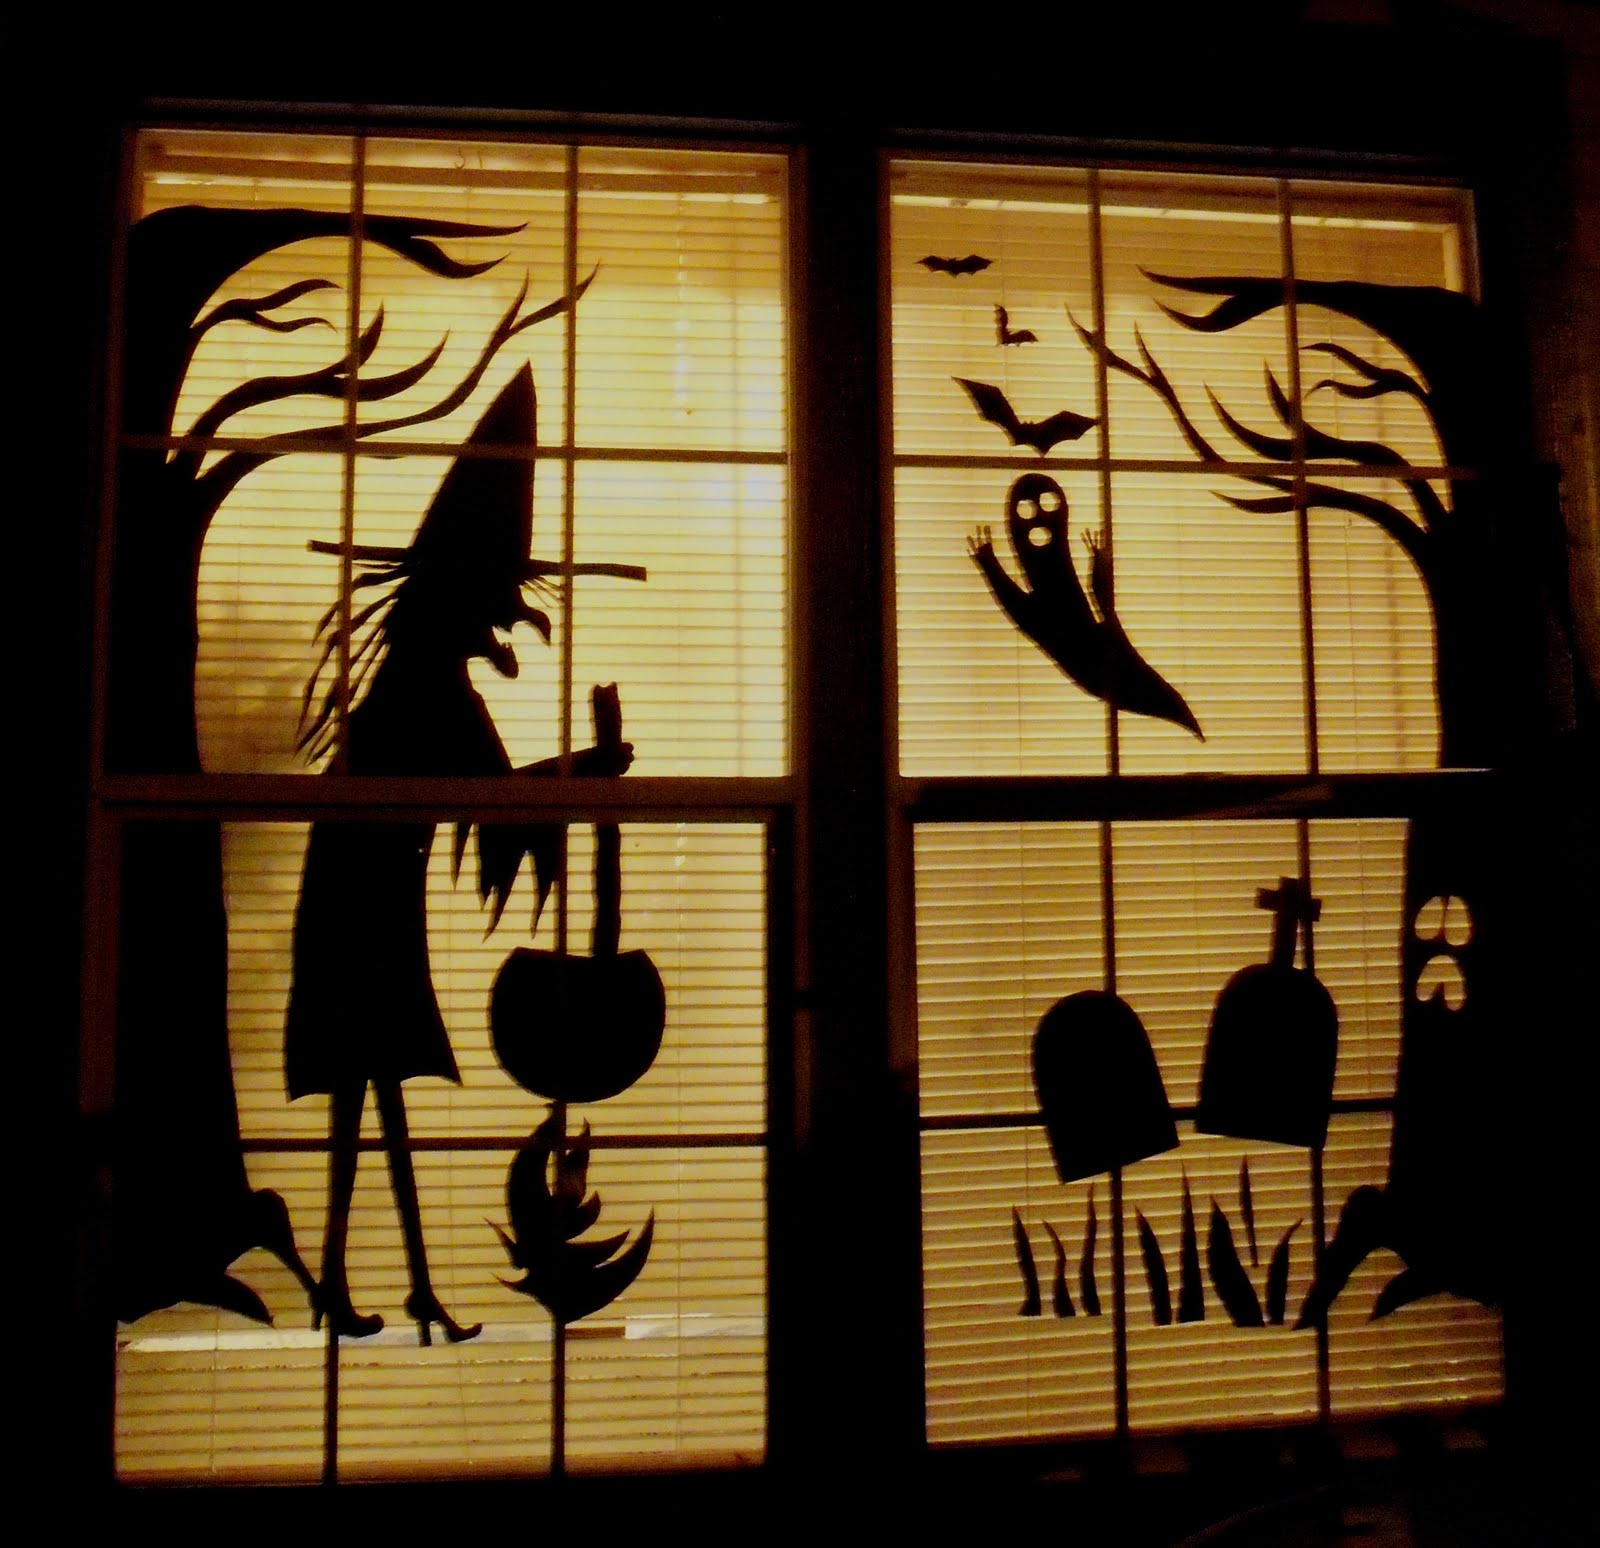 so cheap halloween fun decor with poster board - Decorate For Halloween Cheap